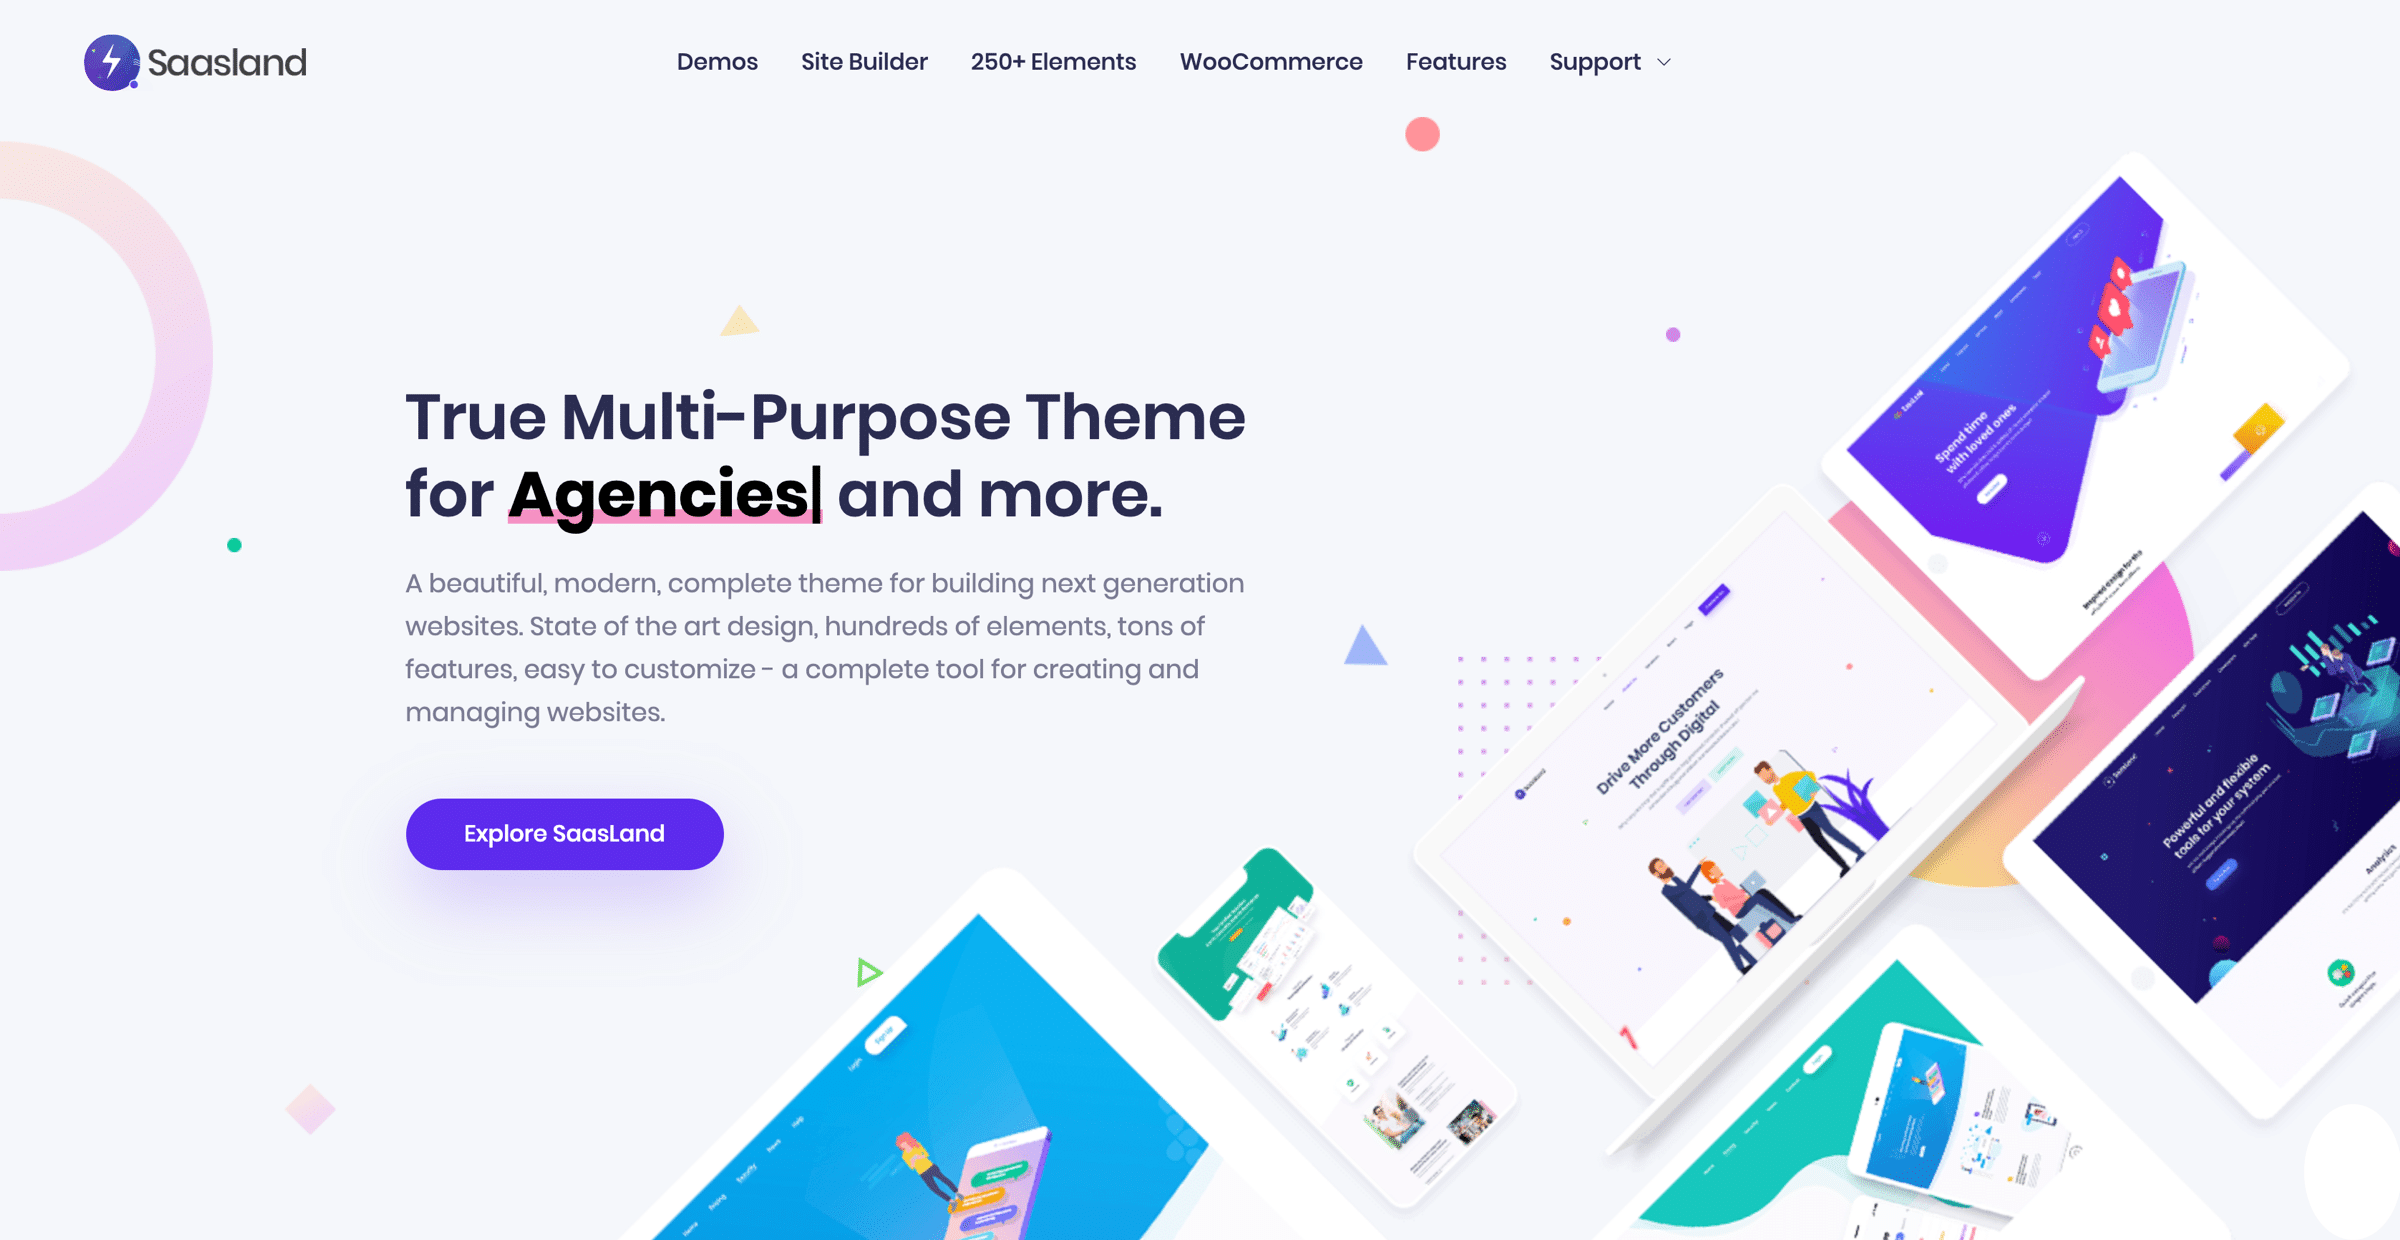 Saasland is the best Well Optimized WordPress Theme